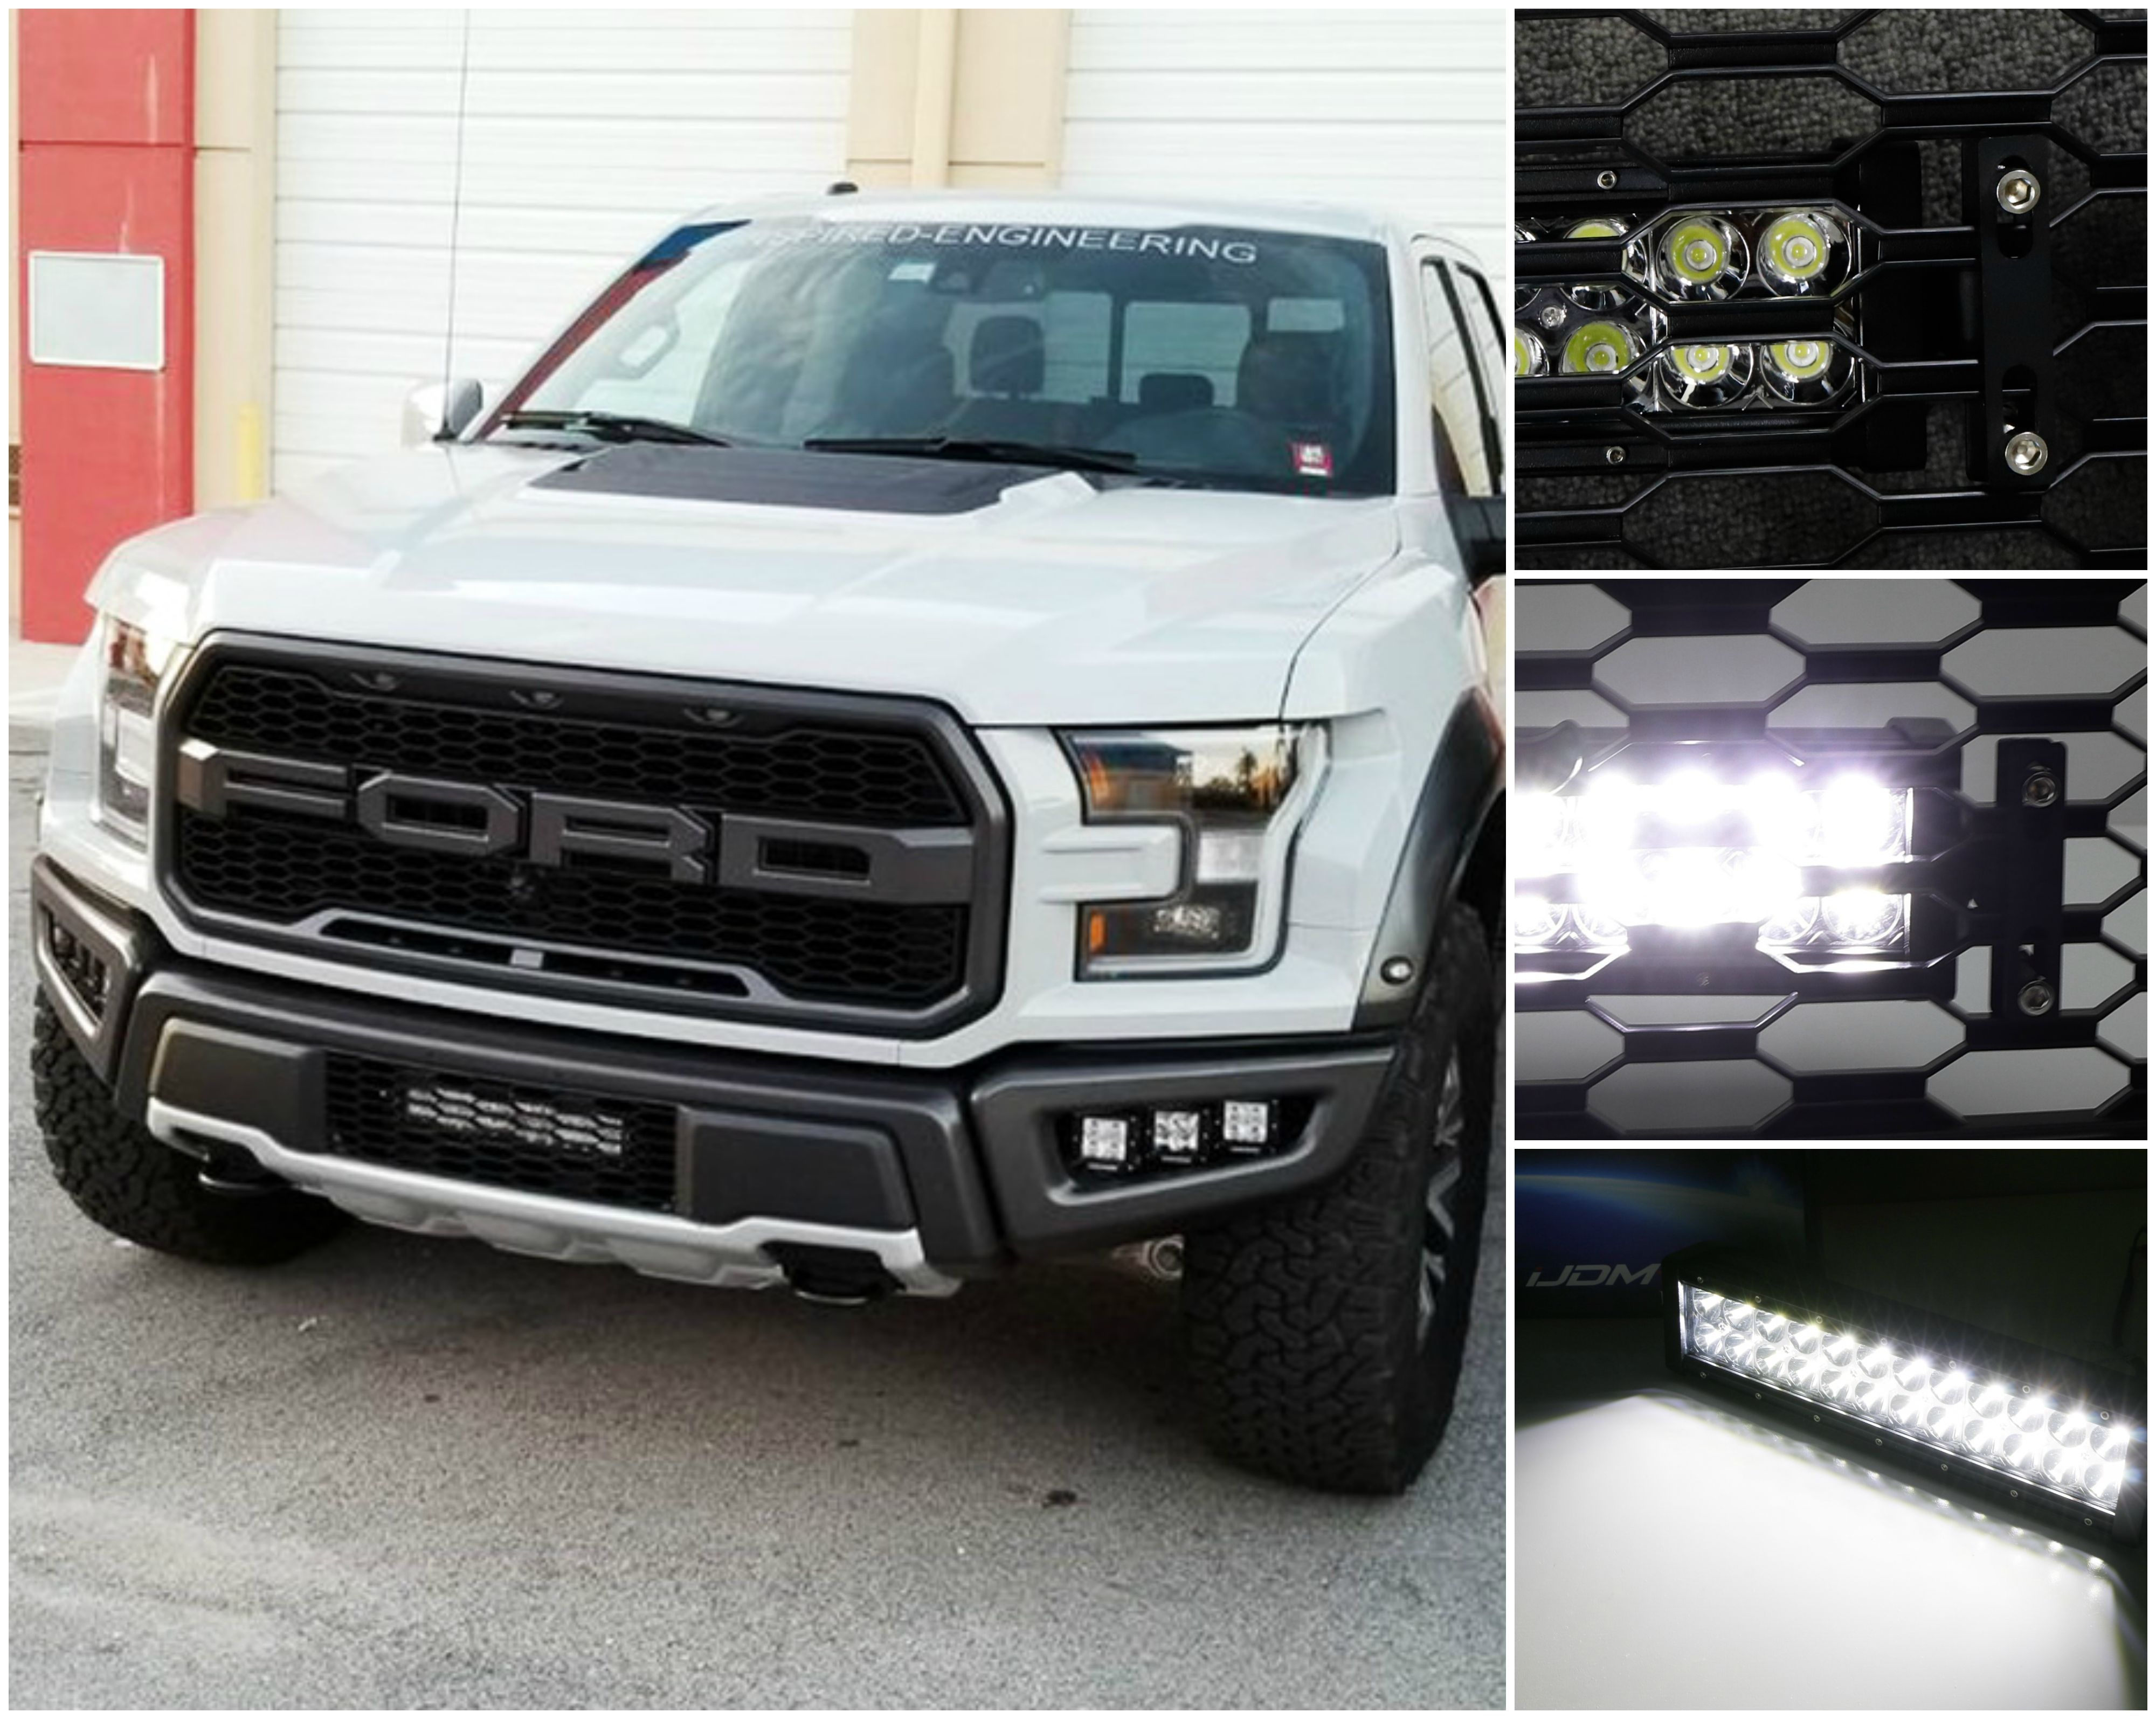 Invisible oem grille mount high power led light bar w behind grille 2017 up ford raptor invisible oem grille mount led light bar aloadofball Choice Image